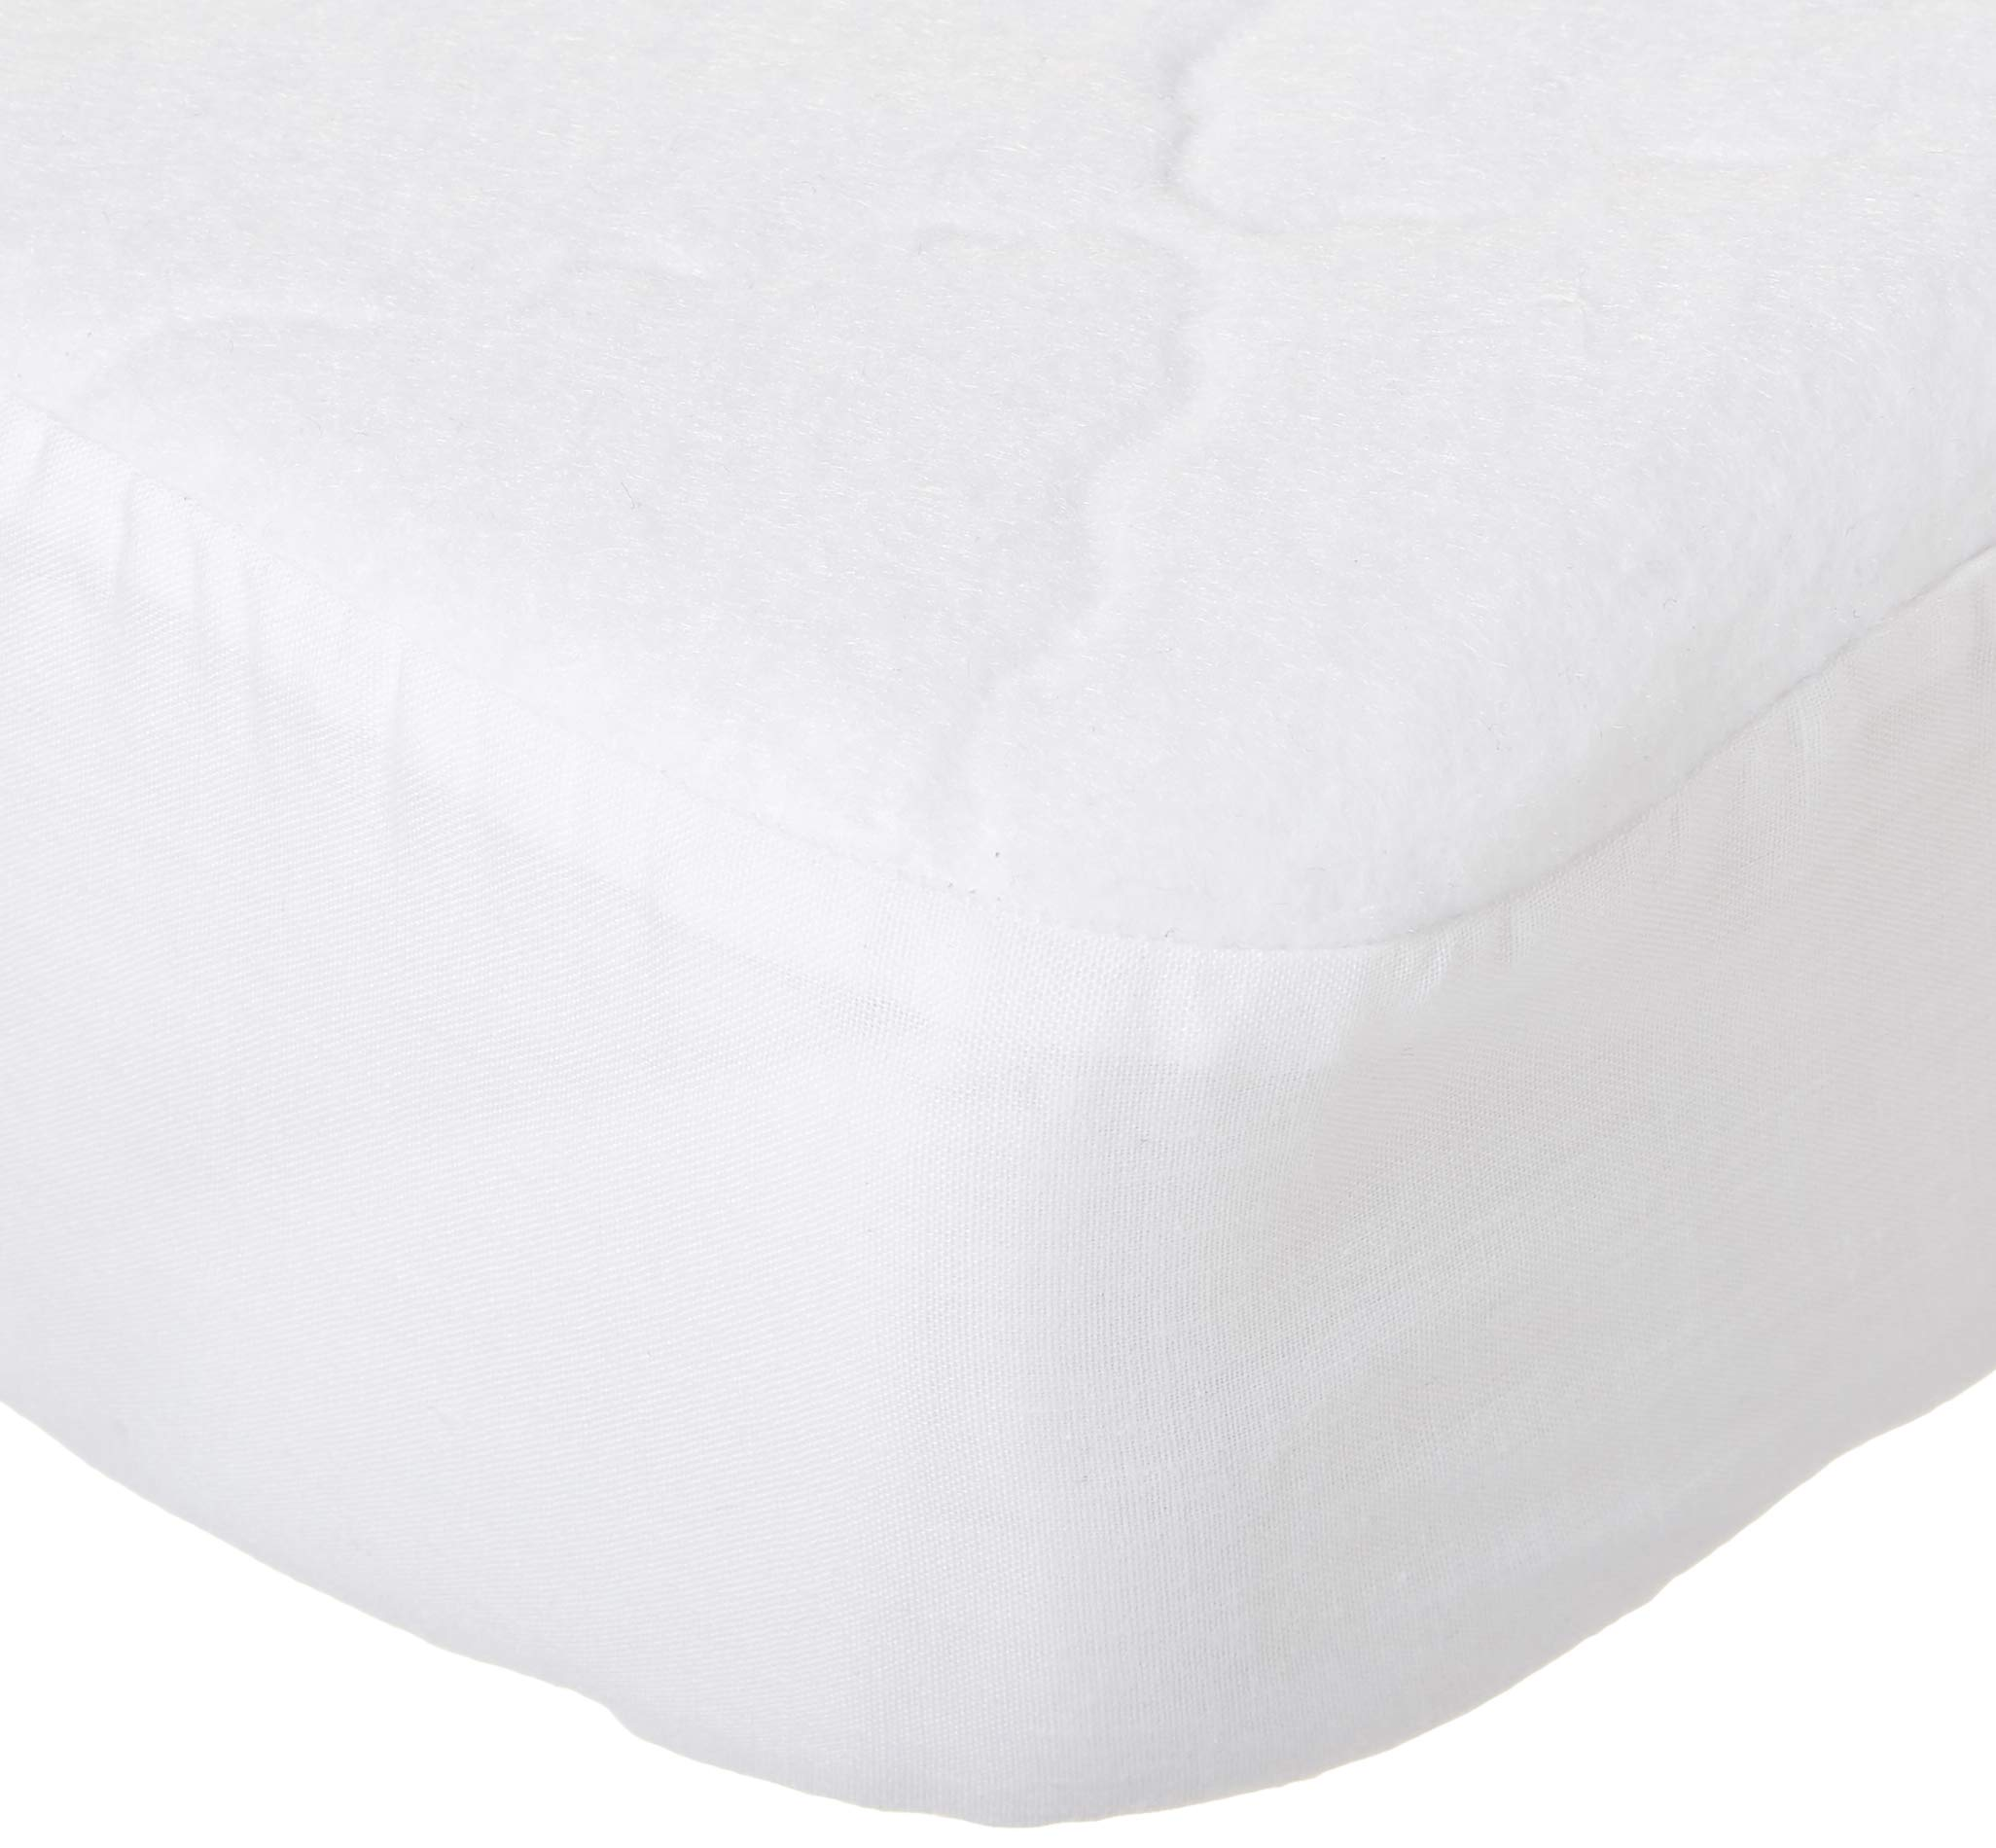 BabyDoll Bedding Fitted Waterproof Bassinet Mattress Protector, 13X29, White